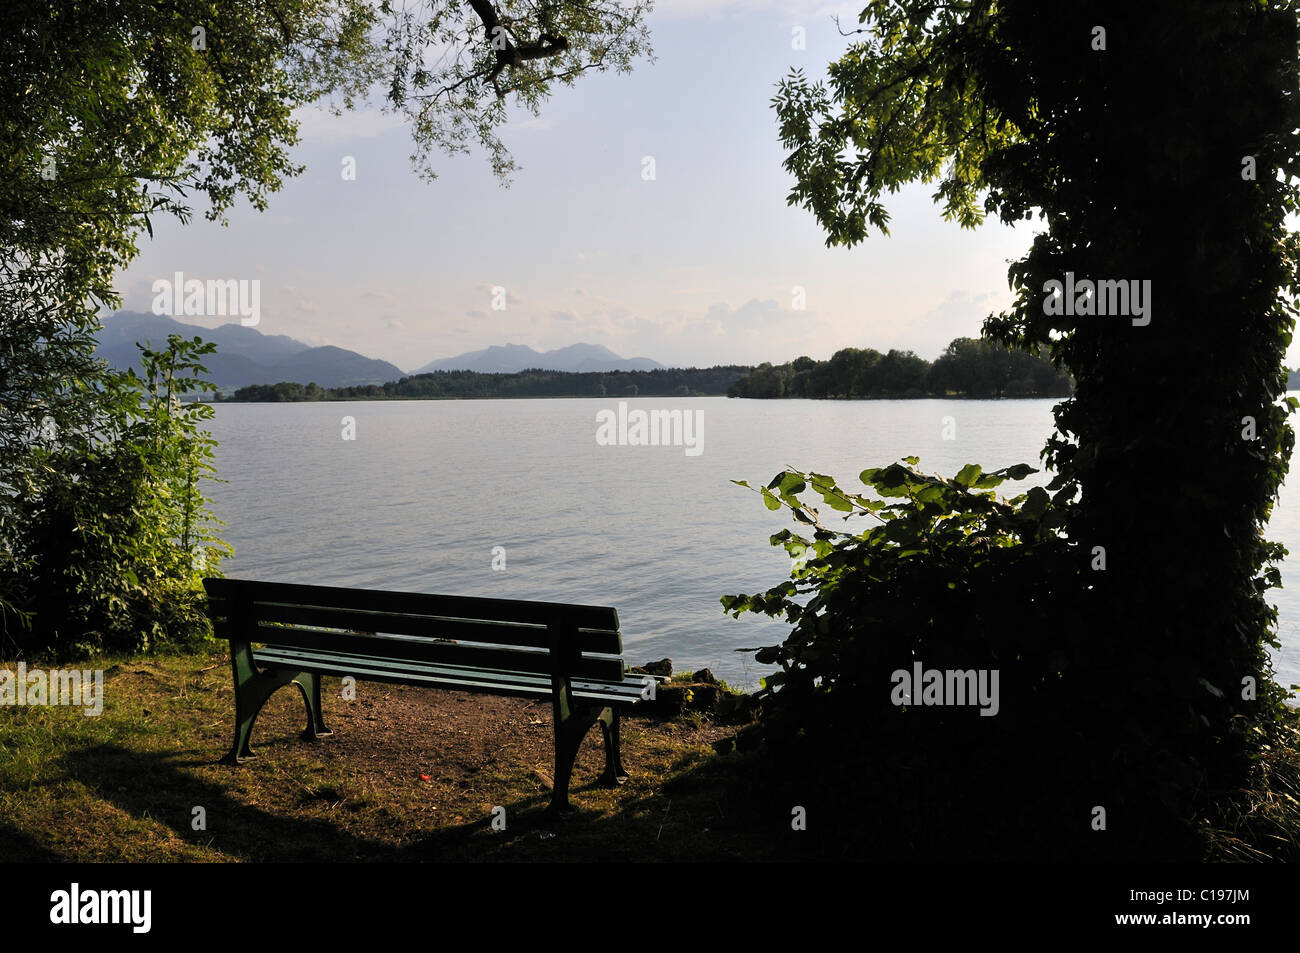 Vacant banquette with sea view, Fraueninsel on Chiemsee, Chiemgau, Upper Bavaria, Bavaria, Germany, Europe - Stock Image